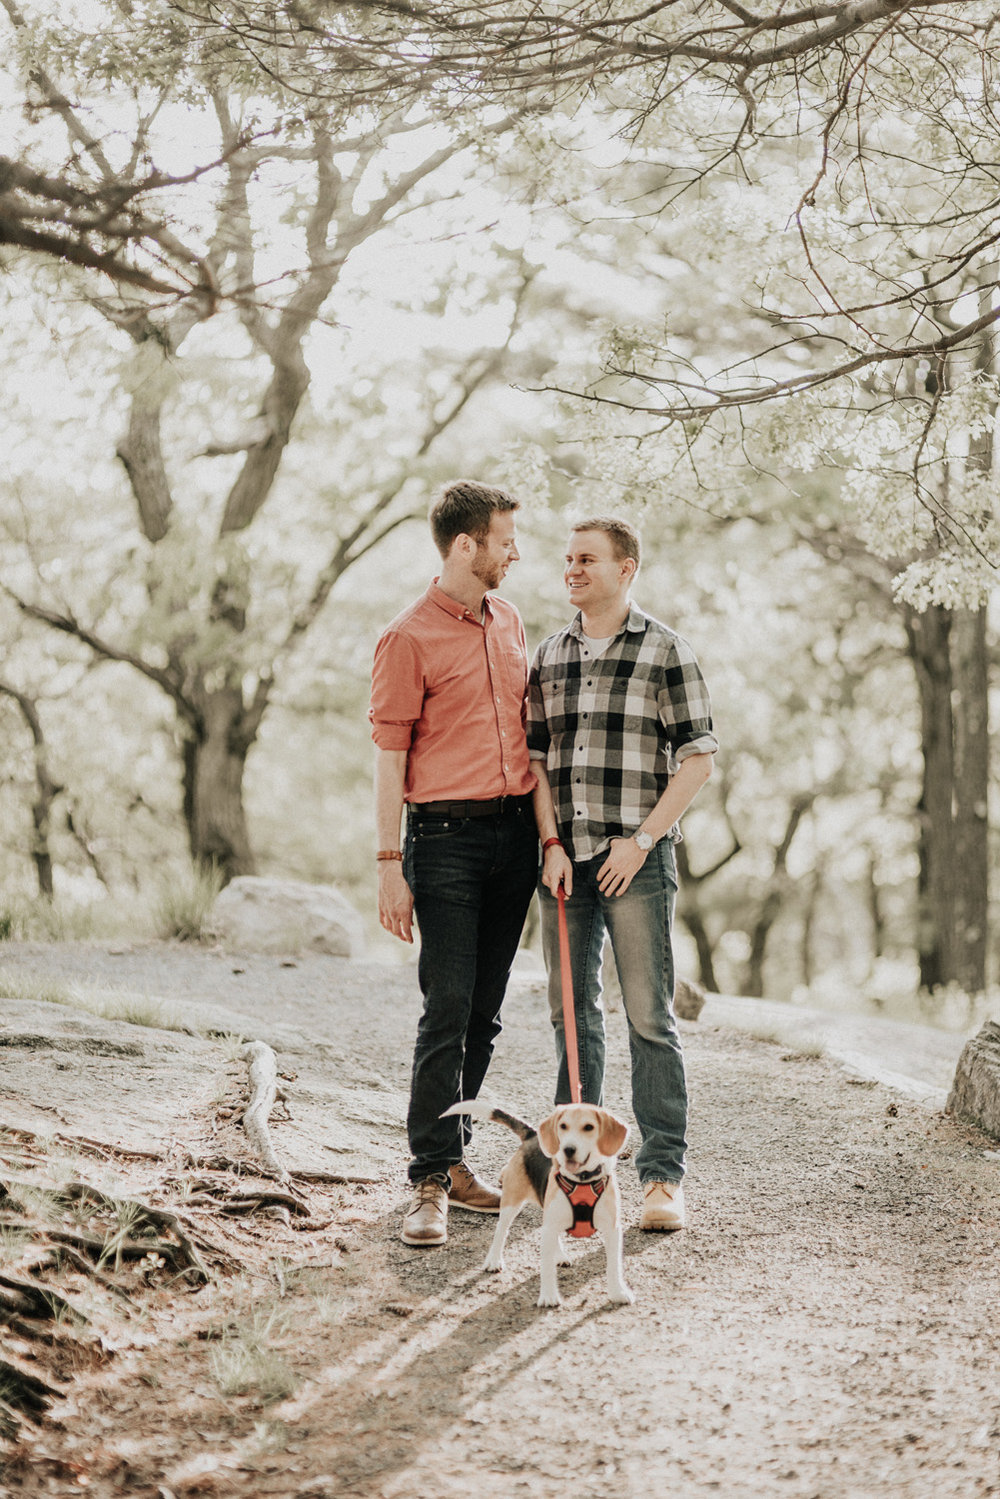 kylewillisphoto_kyle_willis_photography_bear_mountain_engagement_photos_gay_same_sex_sunset_appalacian_philadelphia_new_jersey_york_wedding_photographer_moody_engaged55.jpg